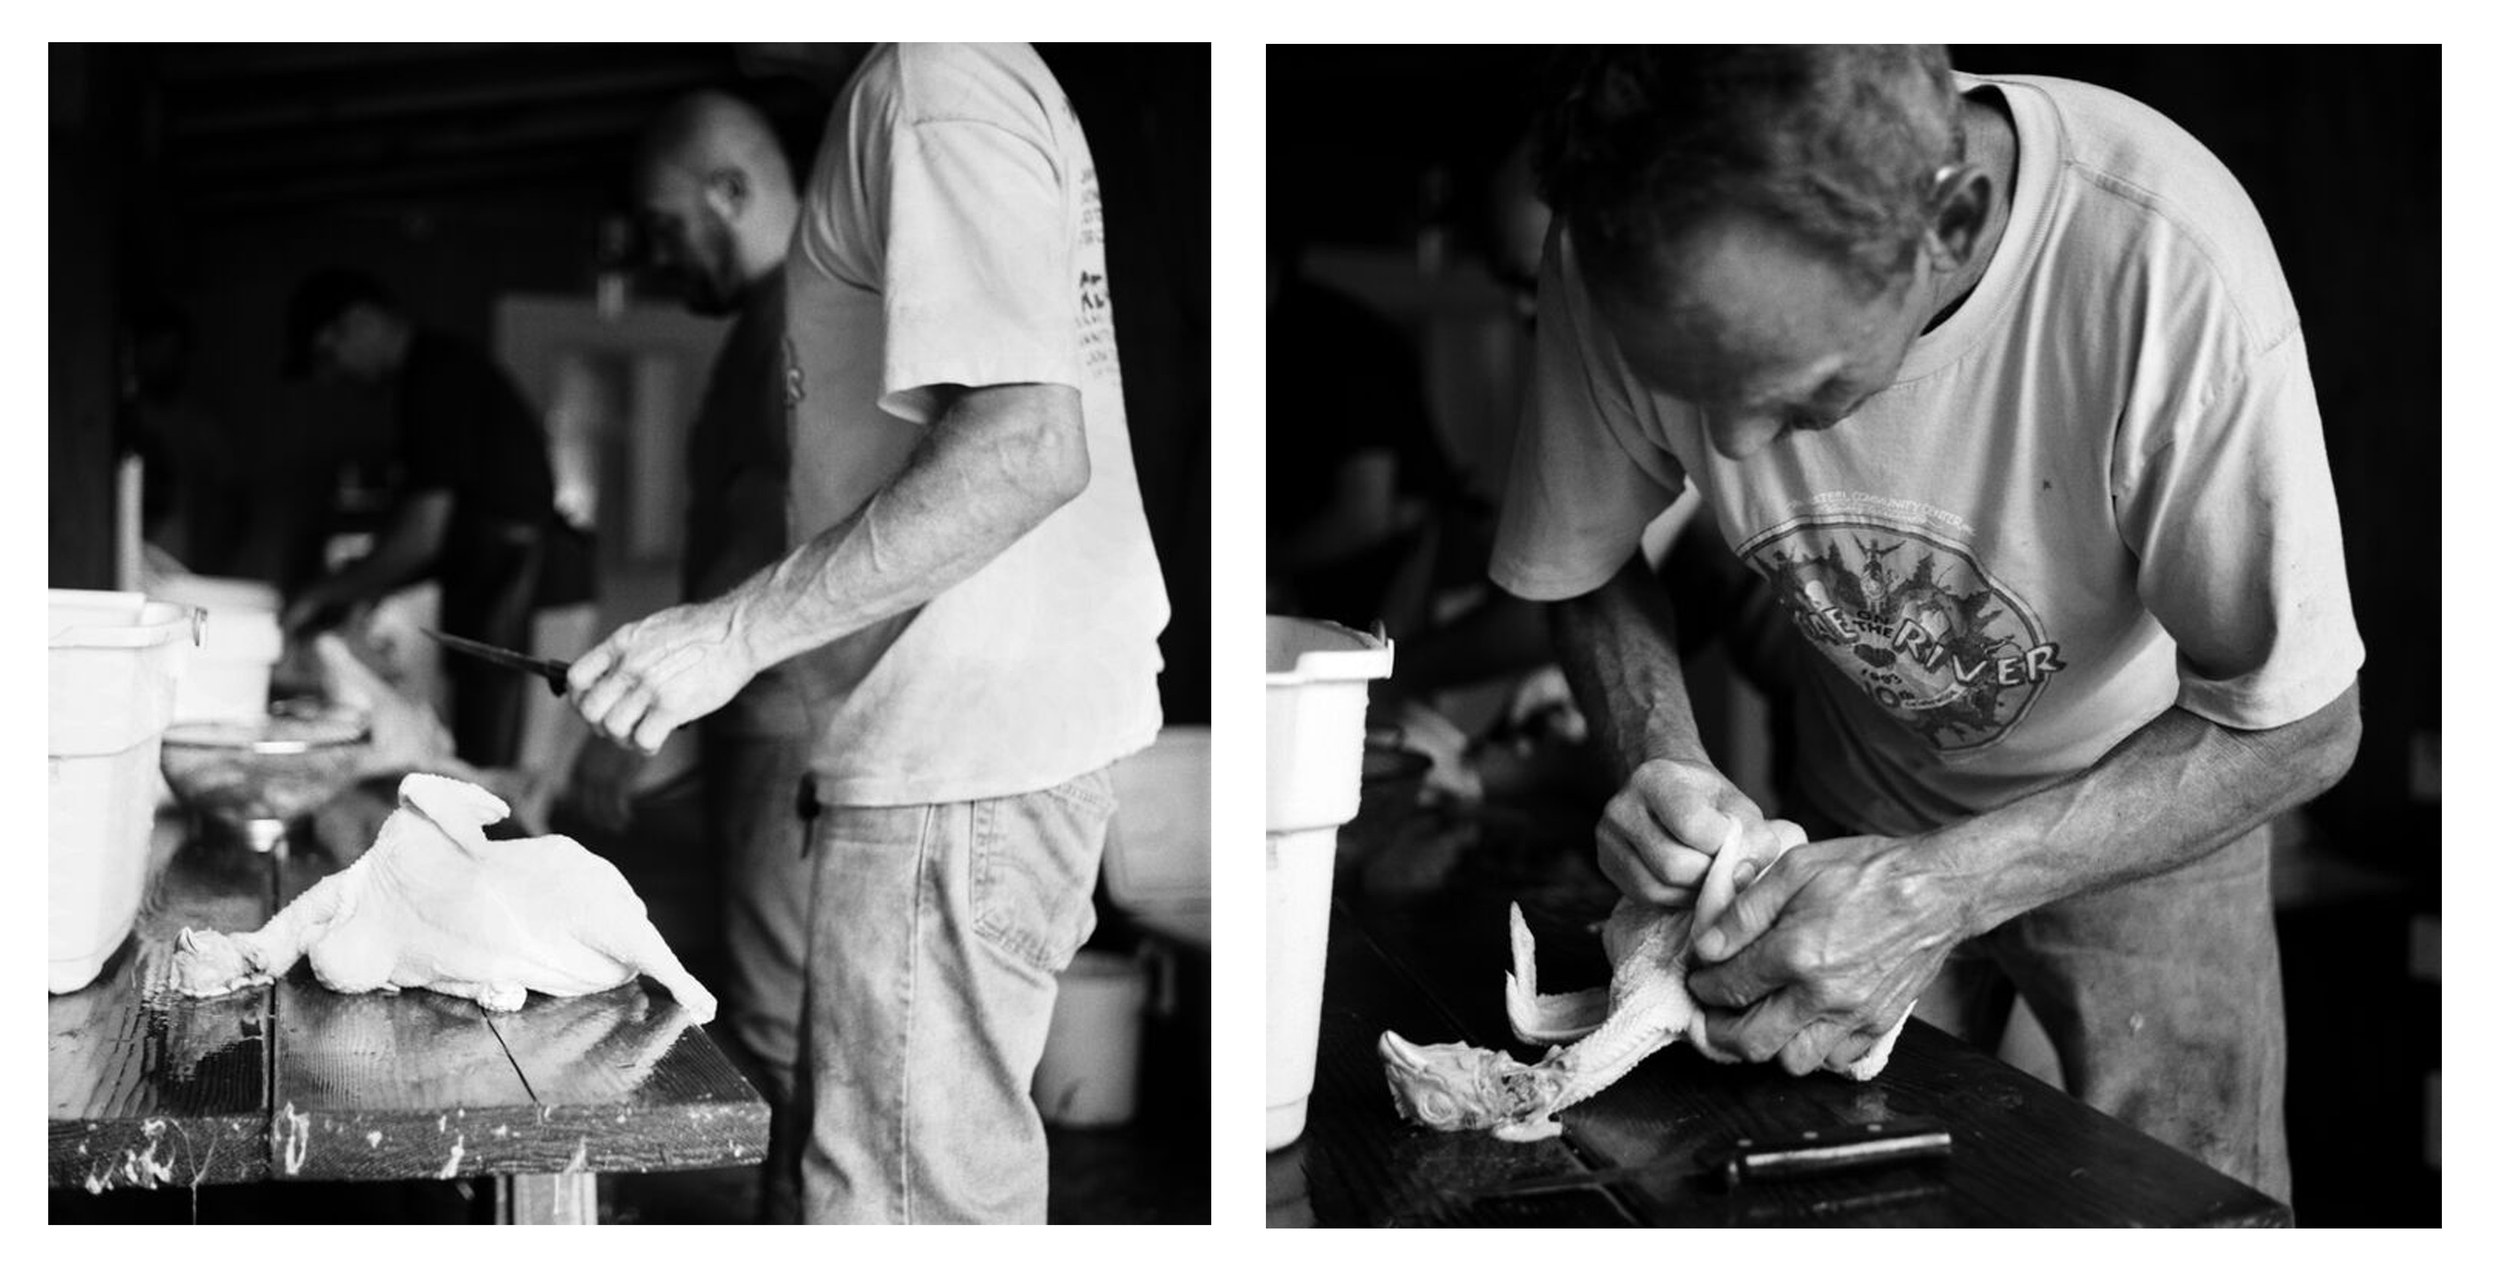 Greg with Chicken, 2015 - These are portraits of my good friend Greg. He has a farm with a huge garden and raises his own animals for meat. He has some beautifully worn hands, if I've ever seen some. I'll have to photograph them again soon.These images were made the day of a chicken slaughter. The one on the left is the moment right before the boys had a race to see who could clean a chicken the fastest and tidiest. His hand paused with a knife, ready. The one on the right hand side is in the heat of battle. Both were taken with my Rolleiflex 3.5 with HP5.